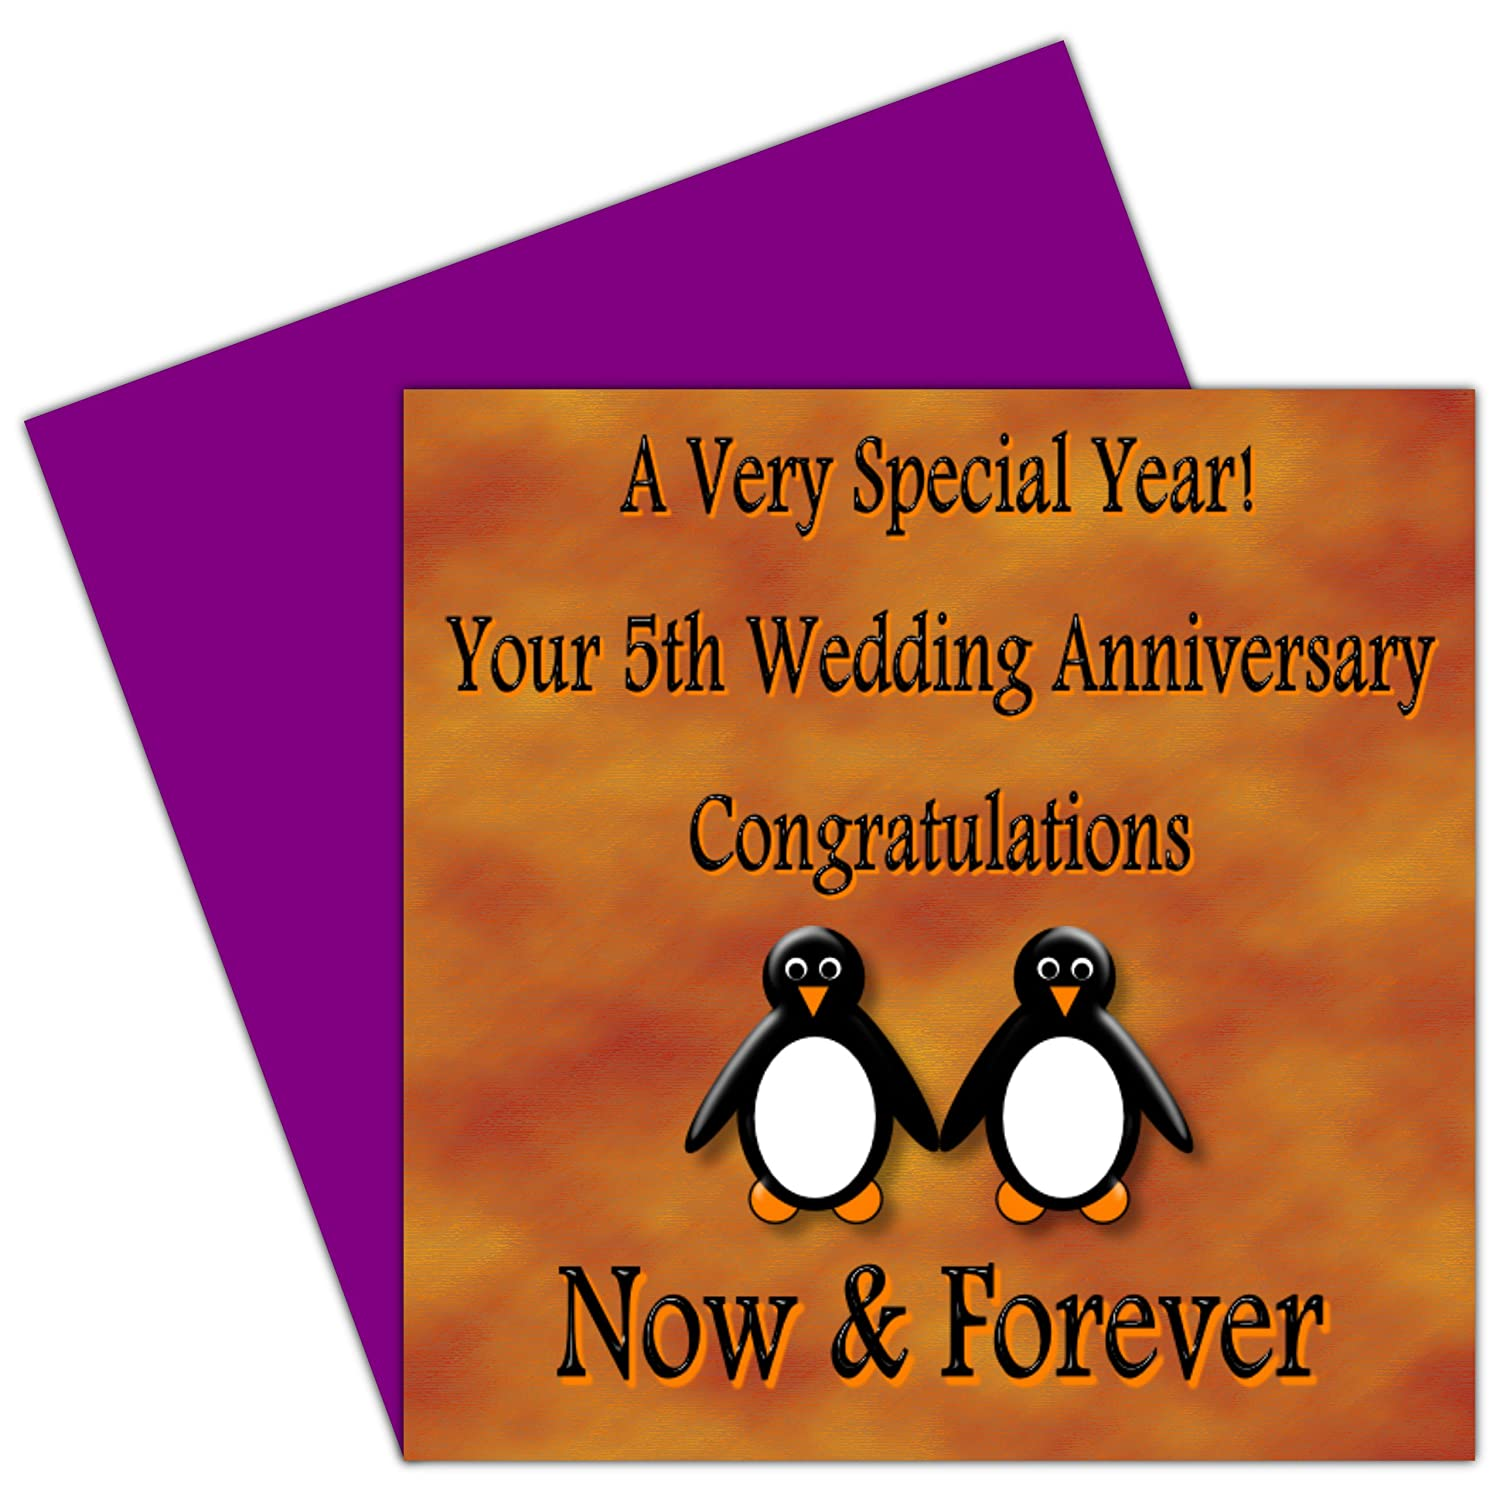 On your 5th wedding anniversary card 5 years wood anniversary on your 5th wedding anniversary card 5 years wood anniversary rosie posie penguin design for family friends amazon office products kristyandbryce Choice Image